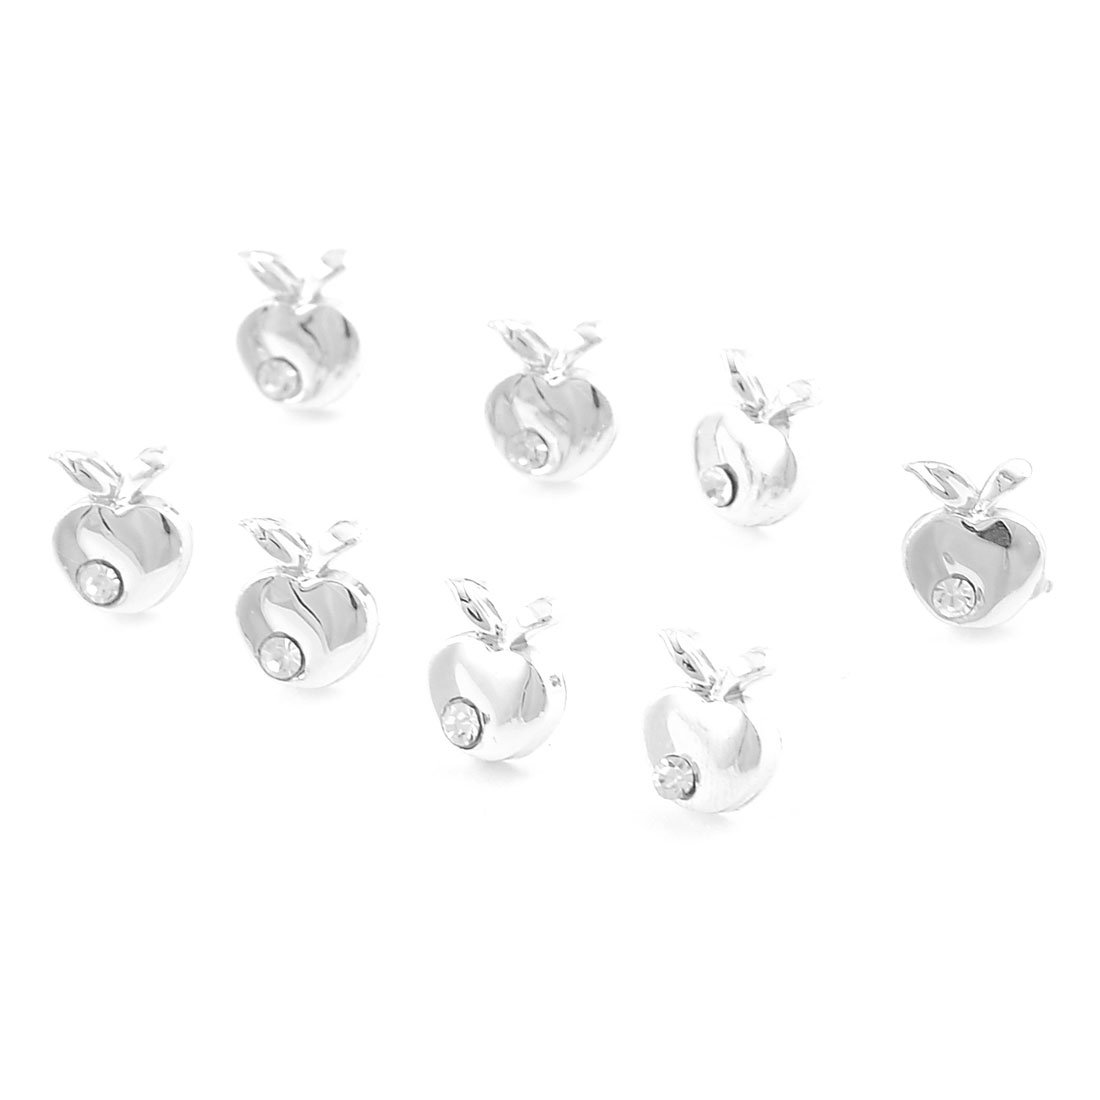 4 Pair Rhinestone Inlaid Apple Decor Stud Earrings for Women